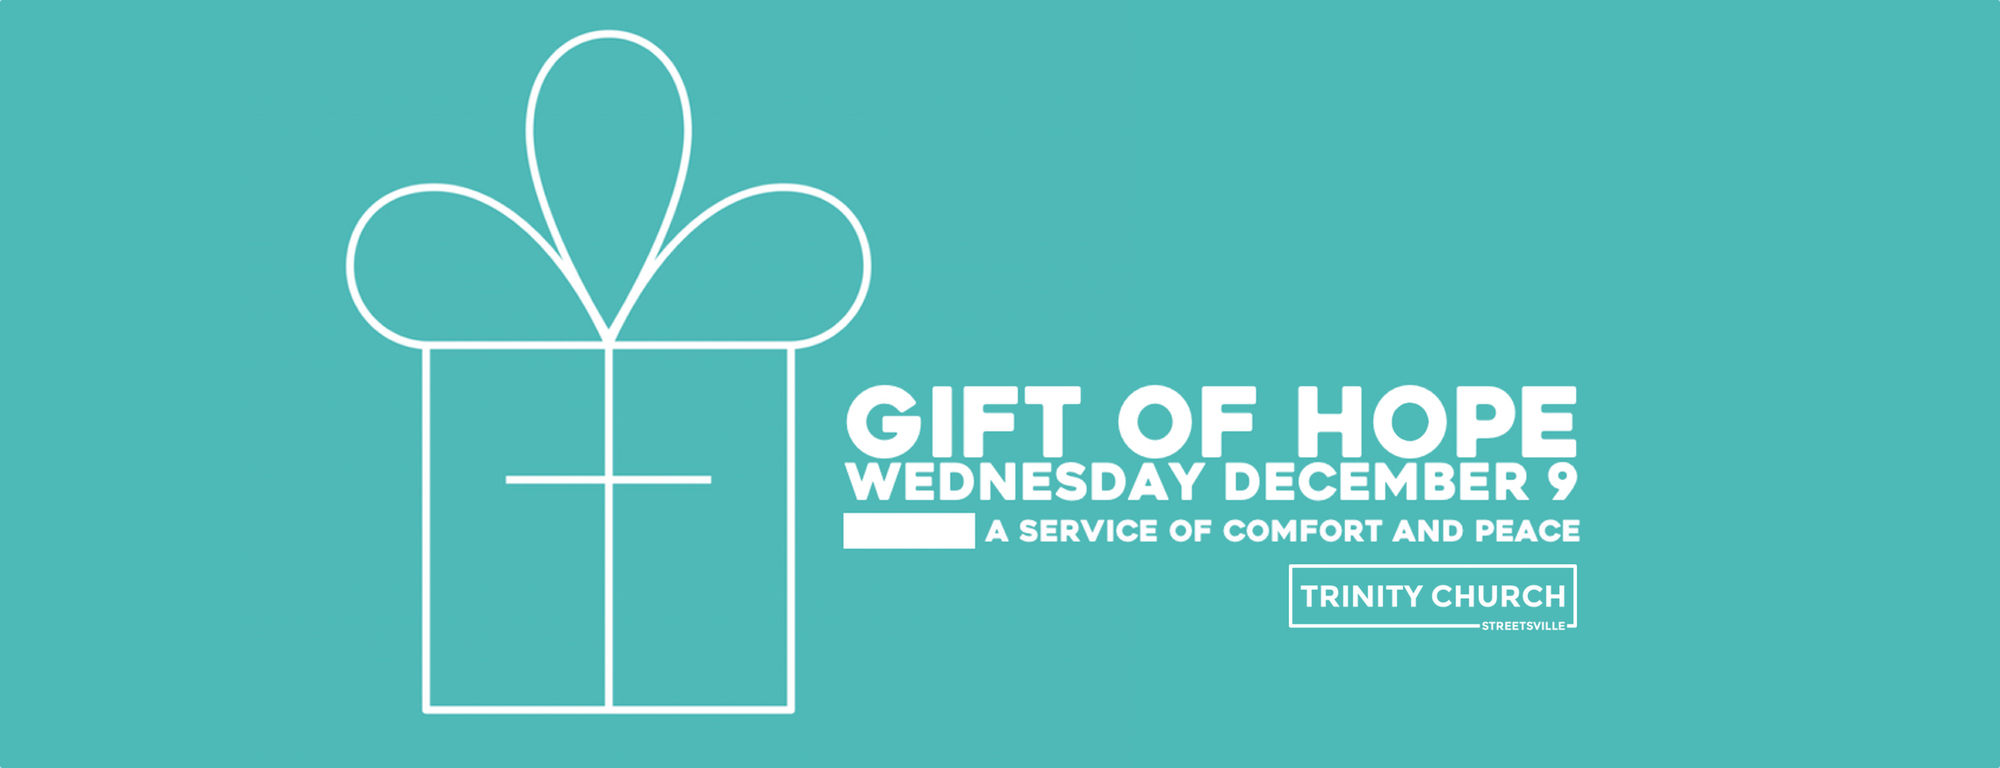 A contemplative and encouraging service for those who may struggle during the christmas season.